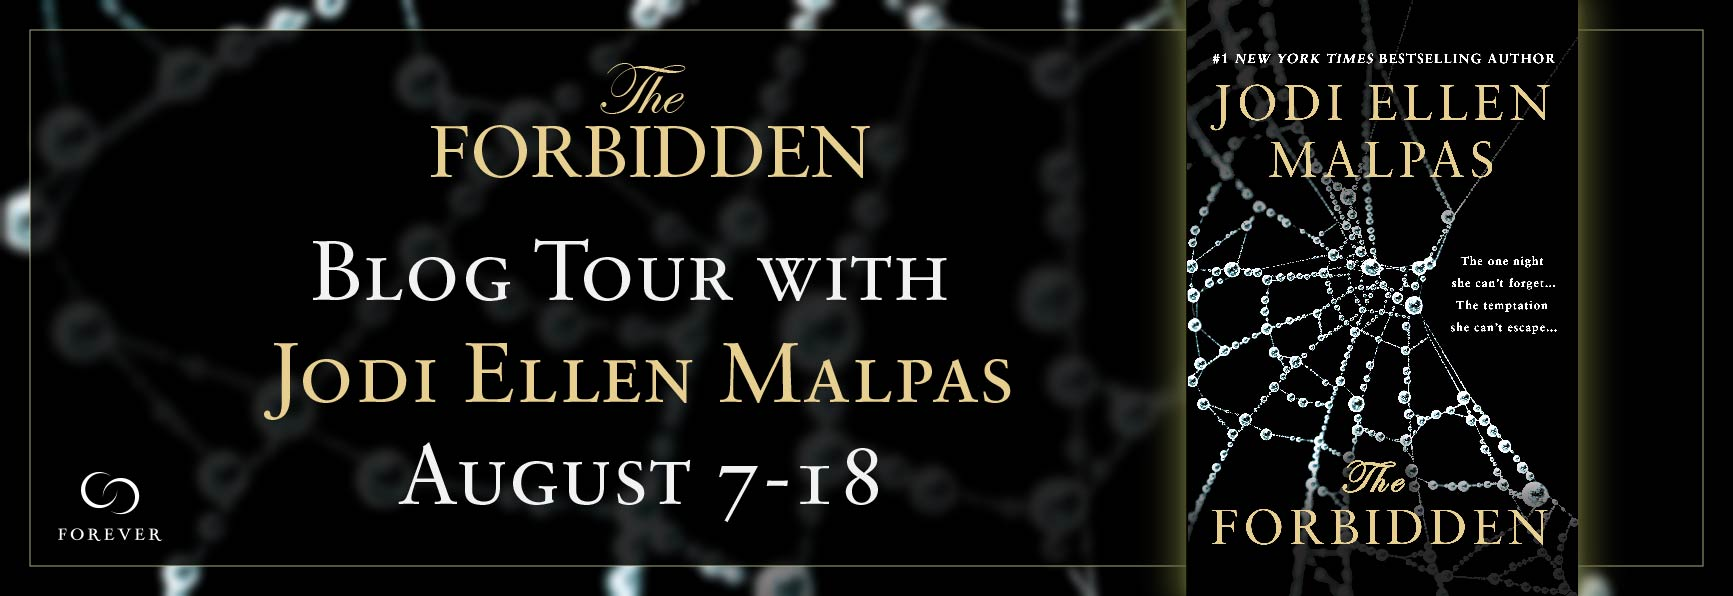 Enter to win 1 of 10 copies of The Forbidden!